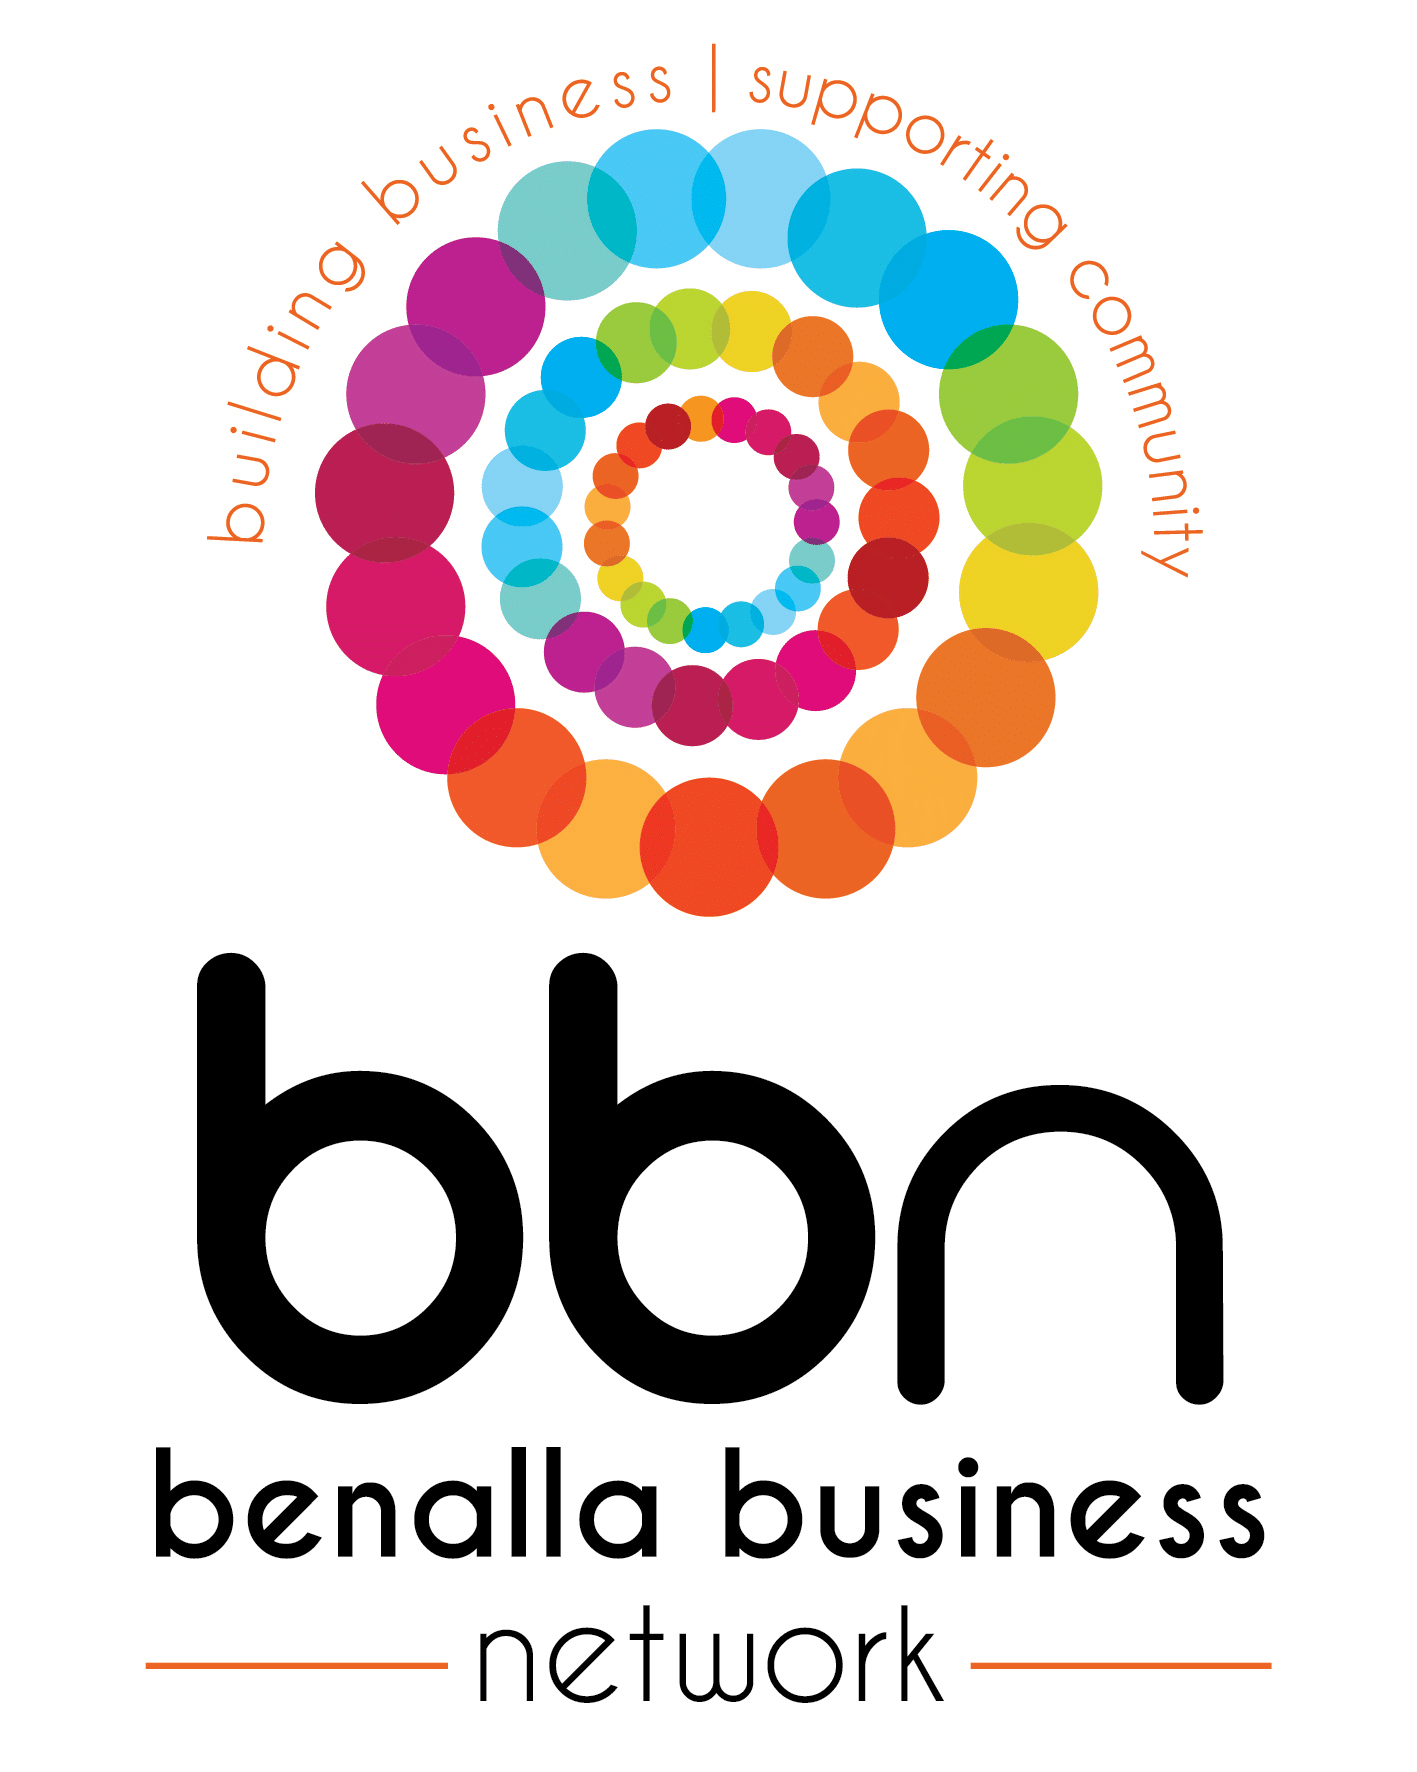 Benalla Business Network logo